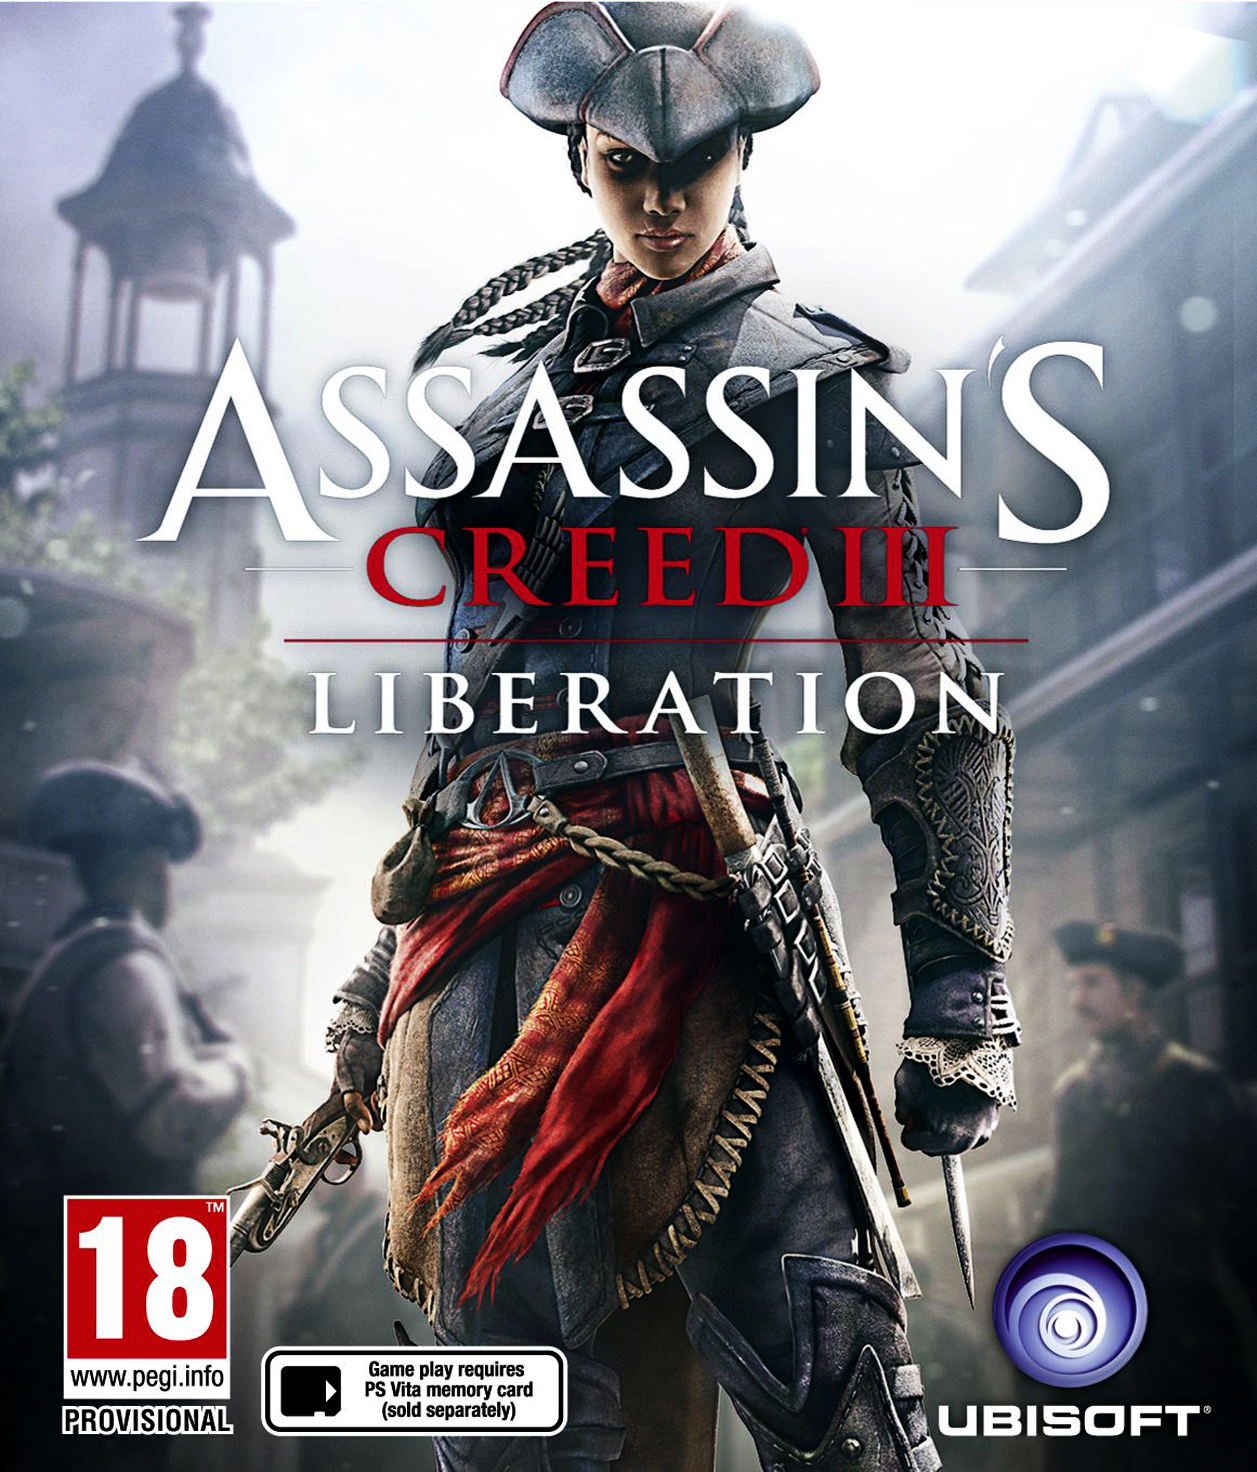 Free Download Assassin's Creed III: Liberation Full Version - Ronan Elektron